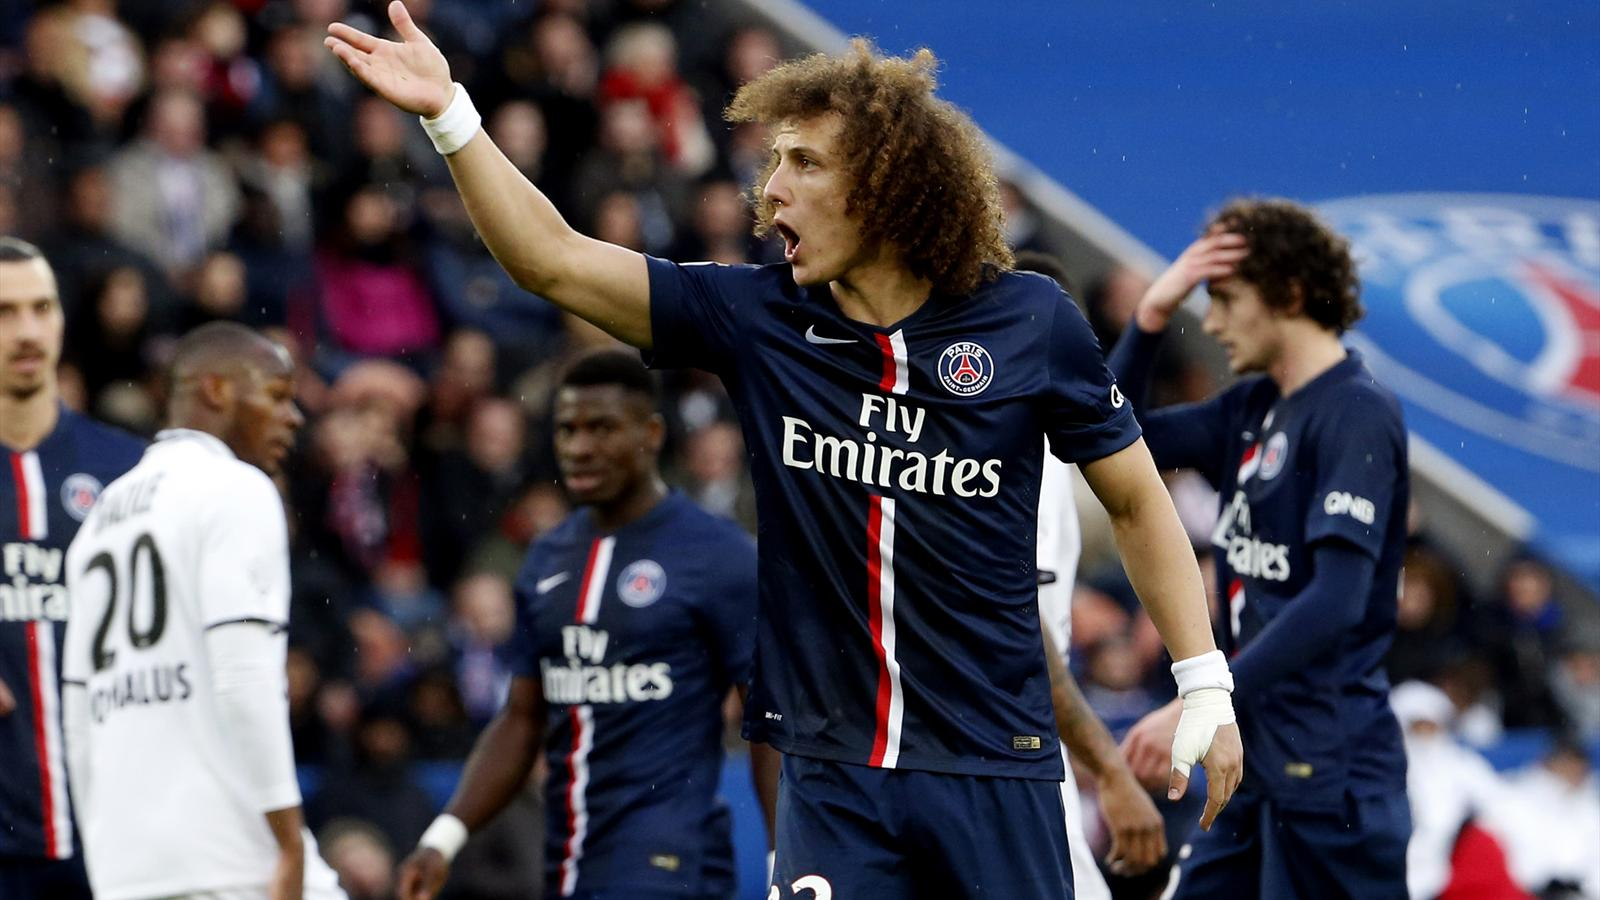 David Luiz (PSG) face à Caen